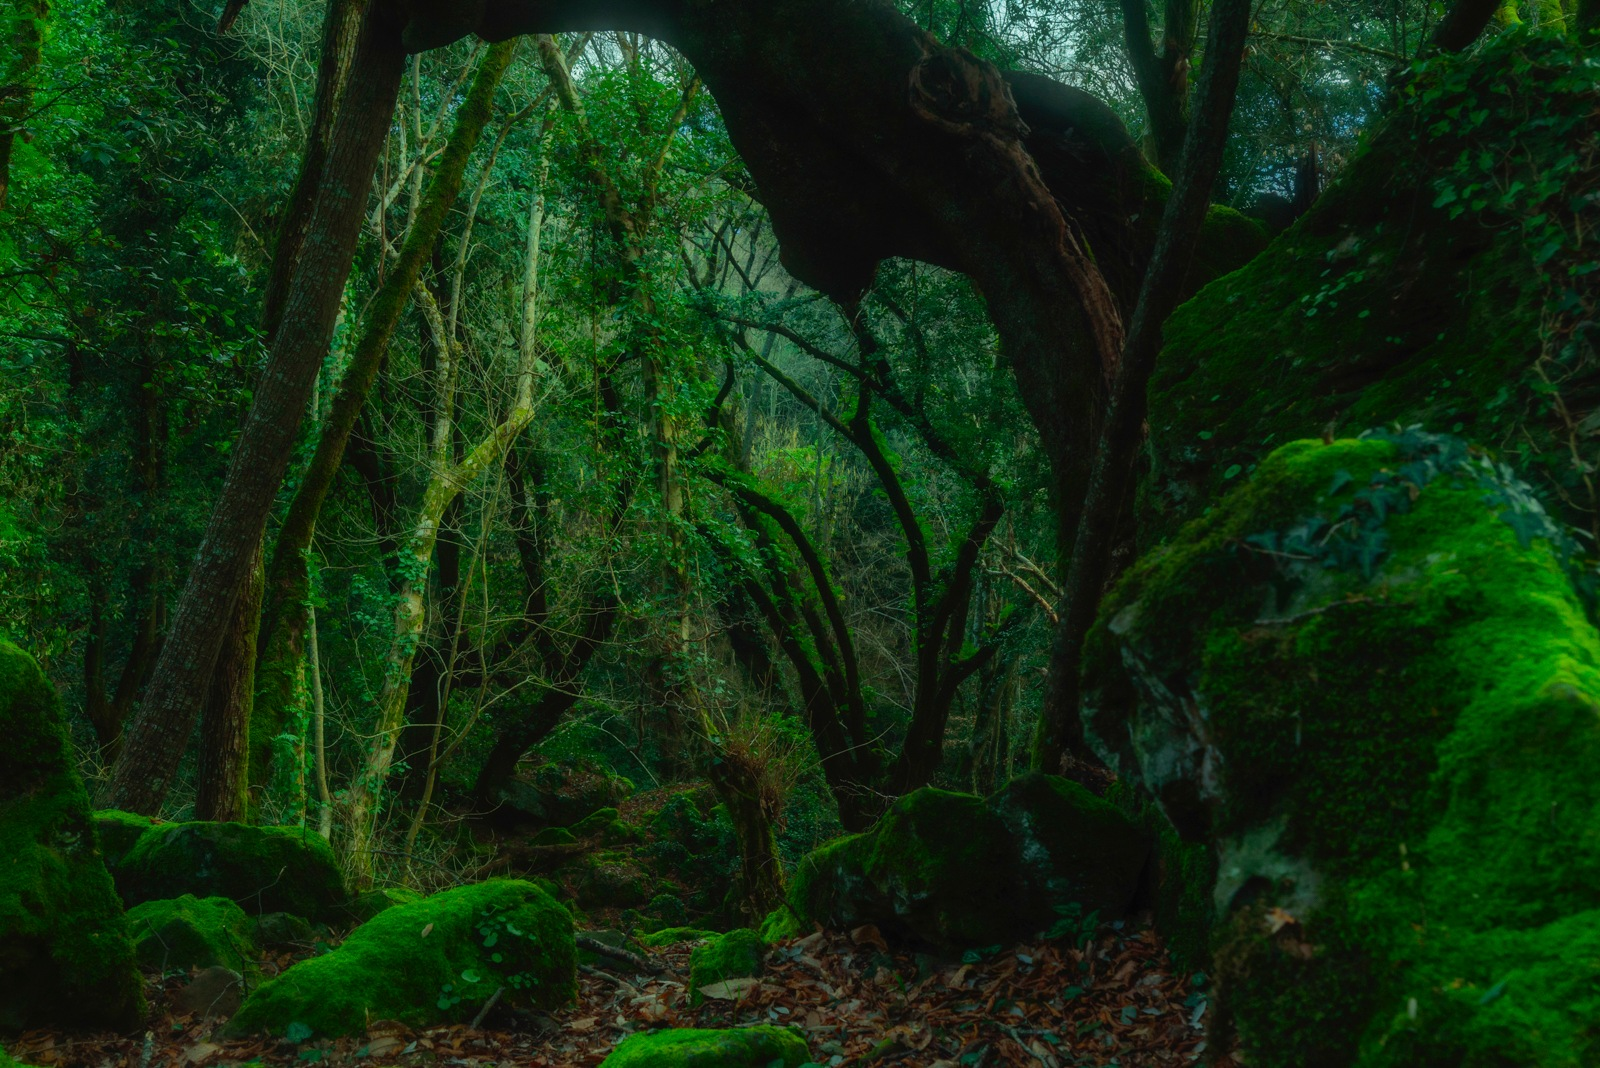 Enchanted Forest 5/5 by Roberto Scordino